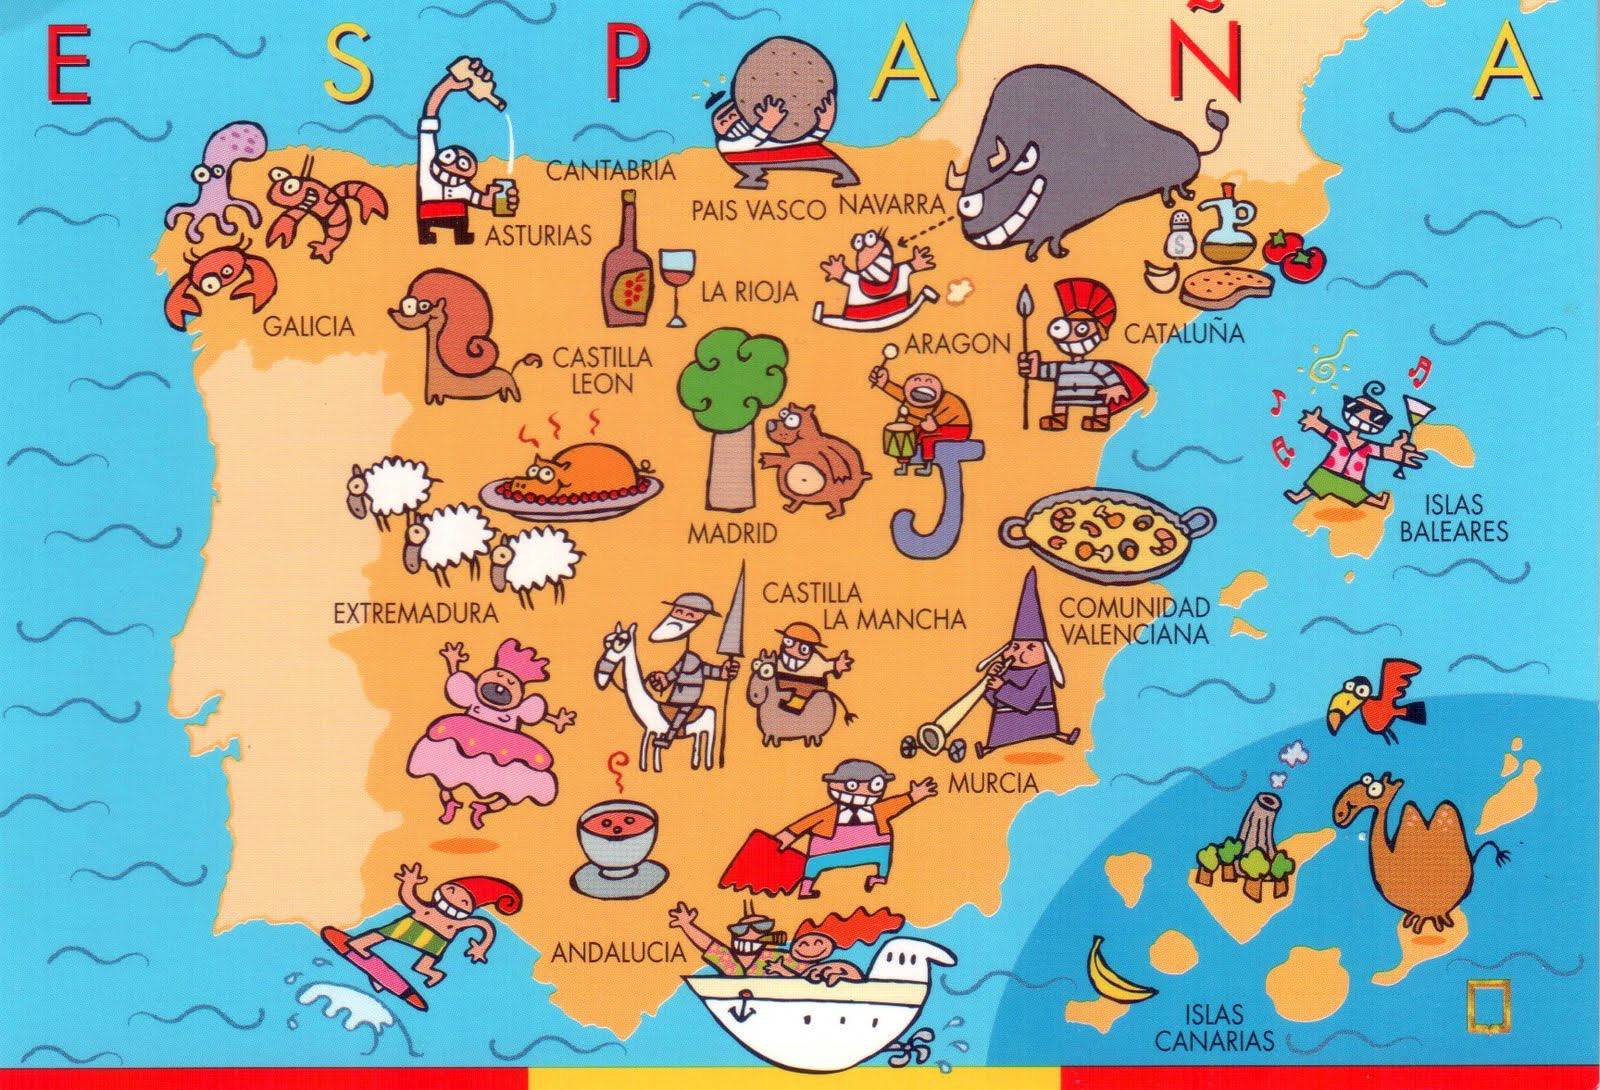 Large Fun Map Of Spain Spain Europe Mapsland Maps Of The World - Large map of spain